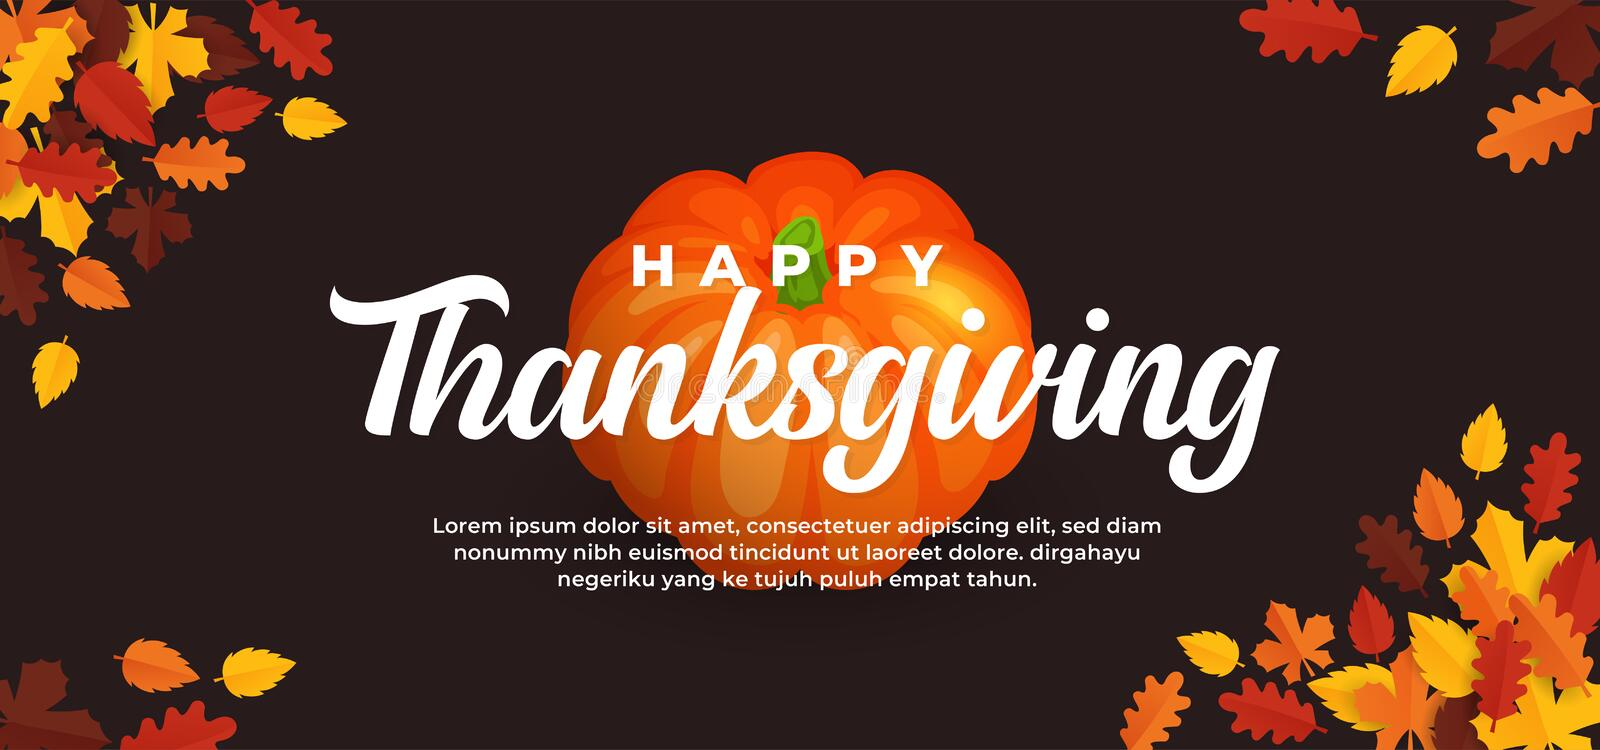 Happy thanksgiving day text on pumpkin fruit background and fall dry leaves vector illustration banner template. Eps 10 stock illustration